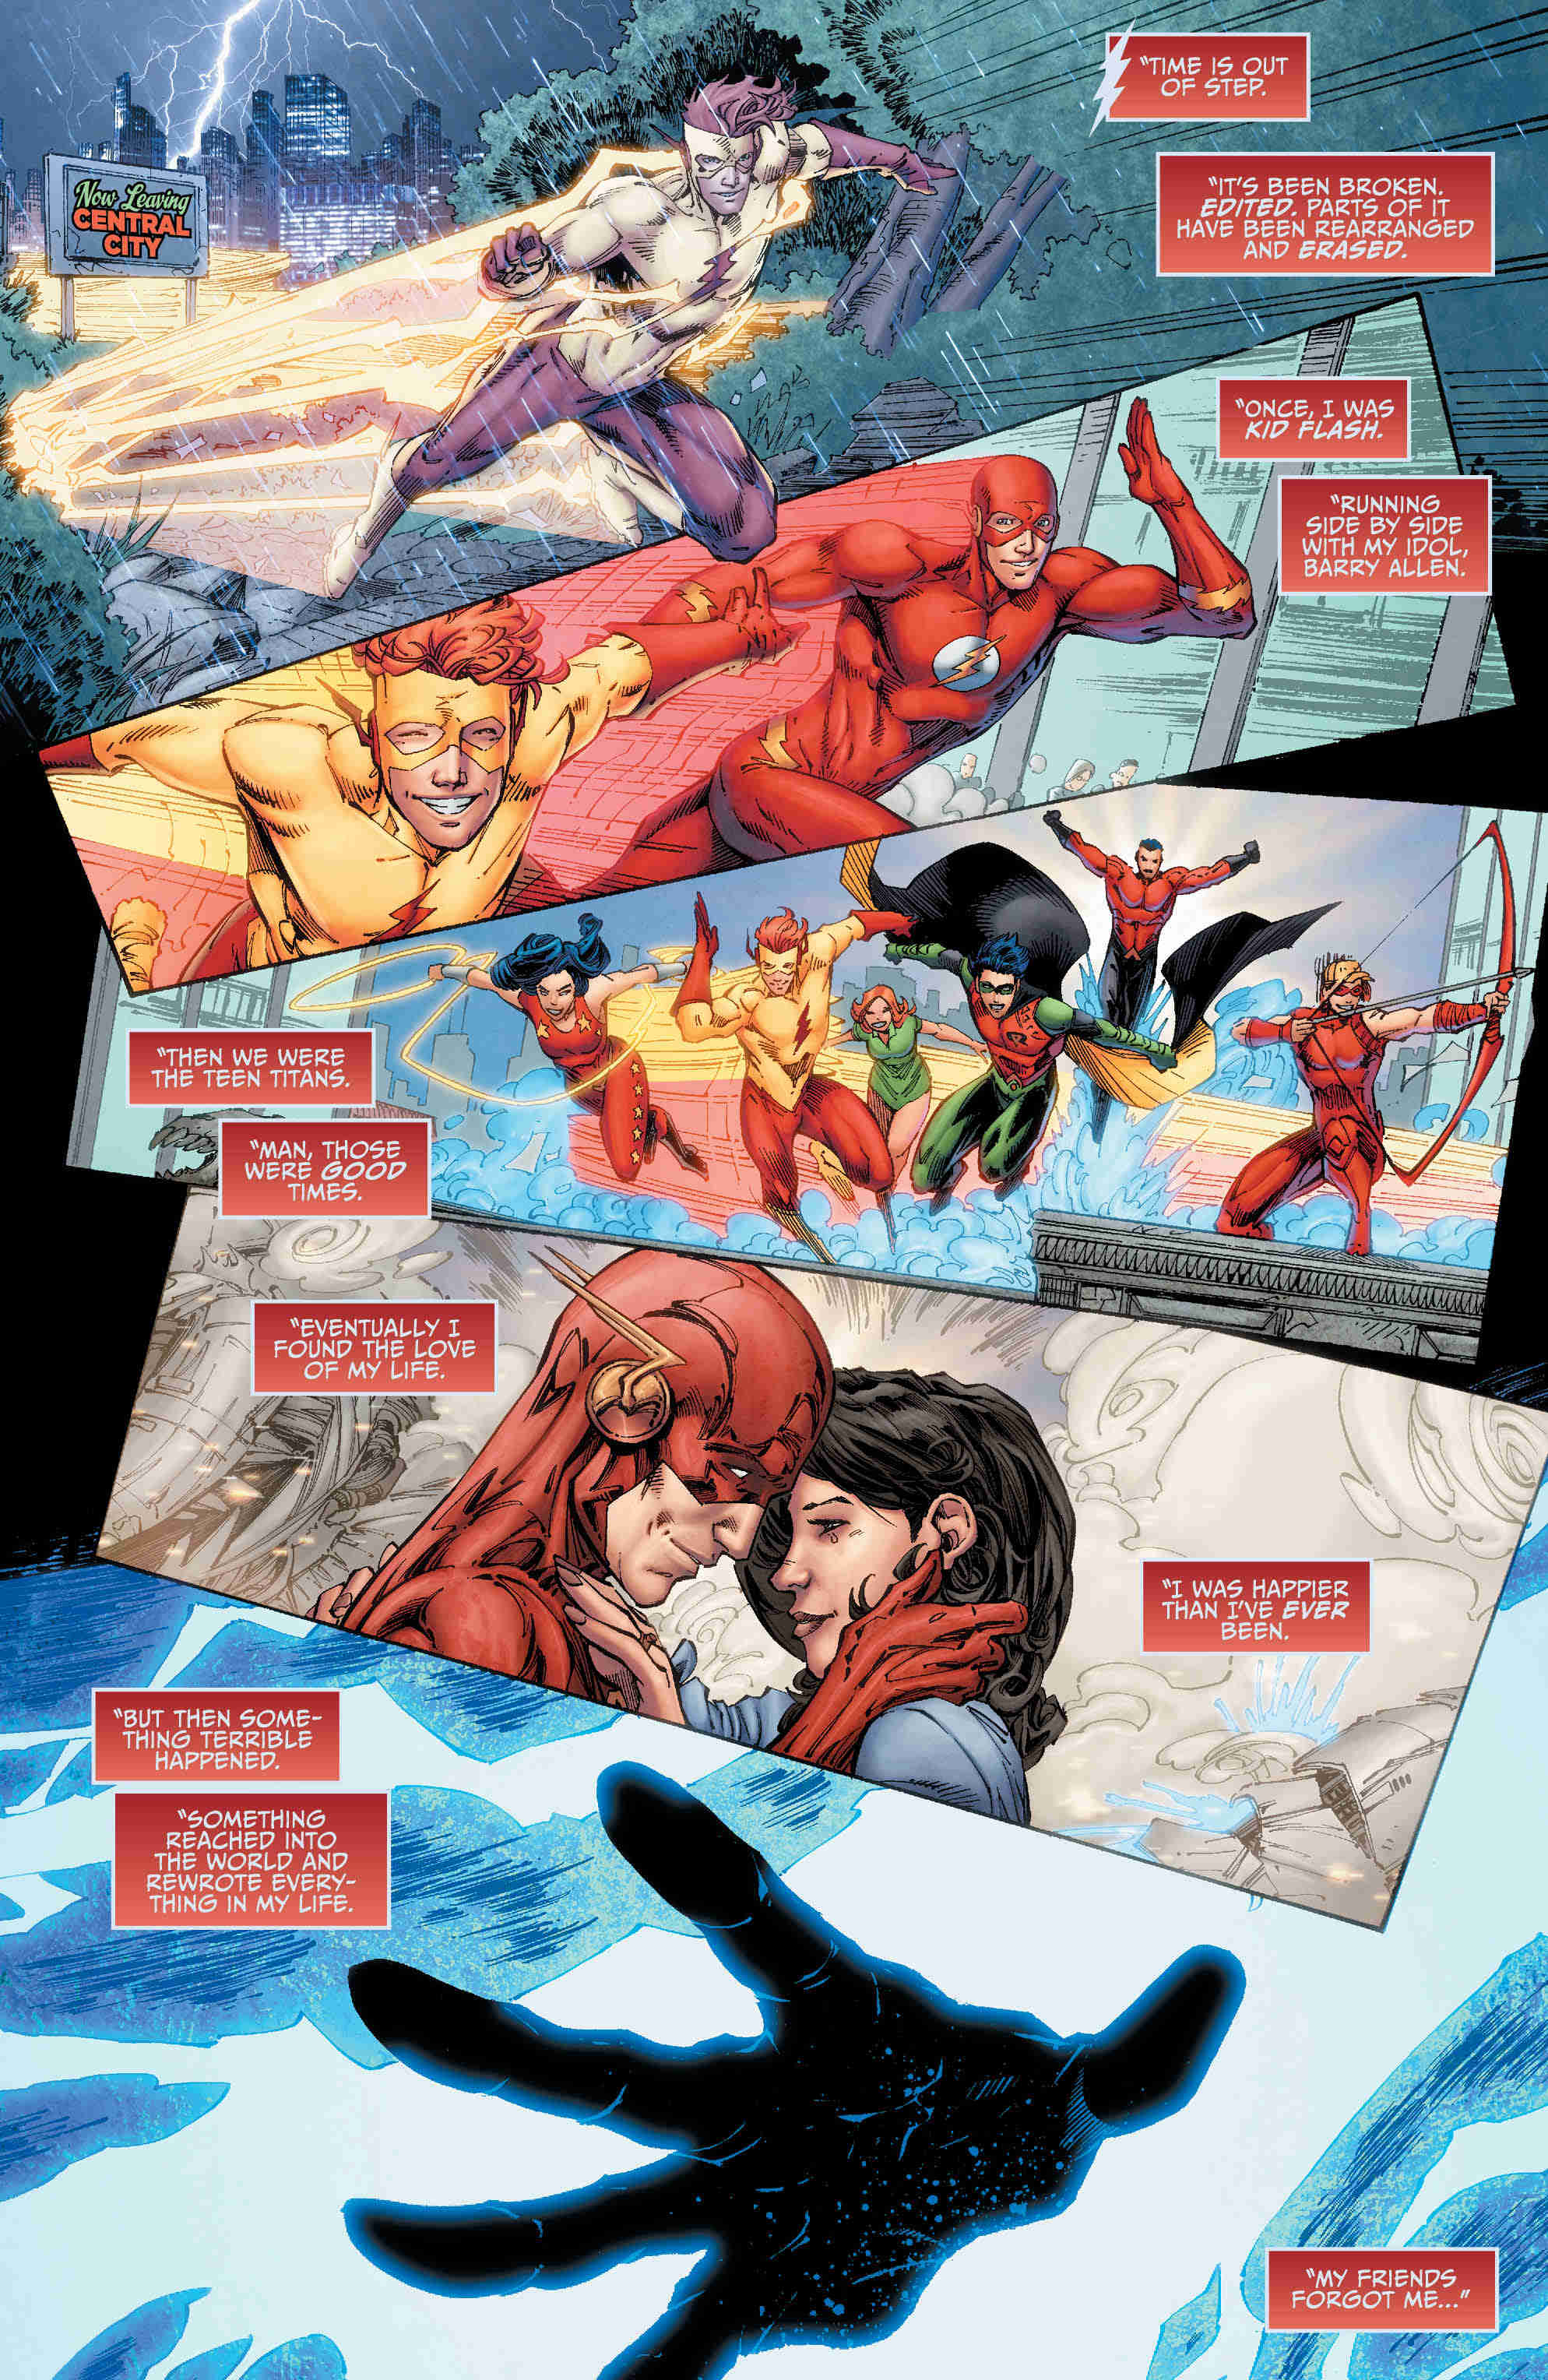 Relive The Return Of Wally West With Titans Vol. 1